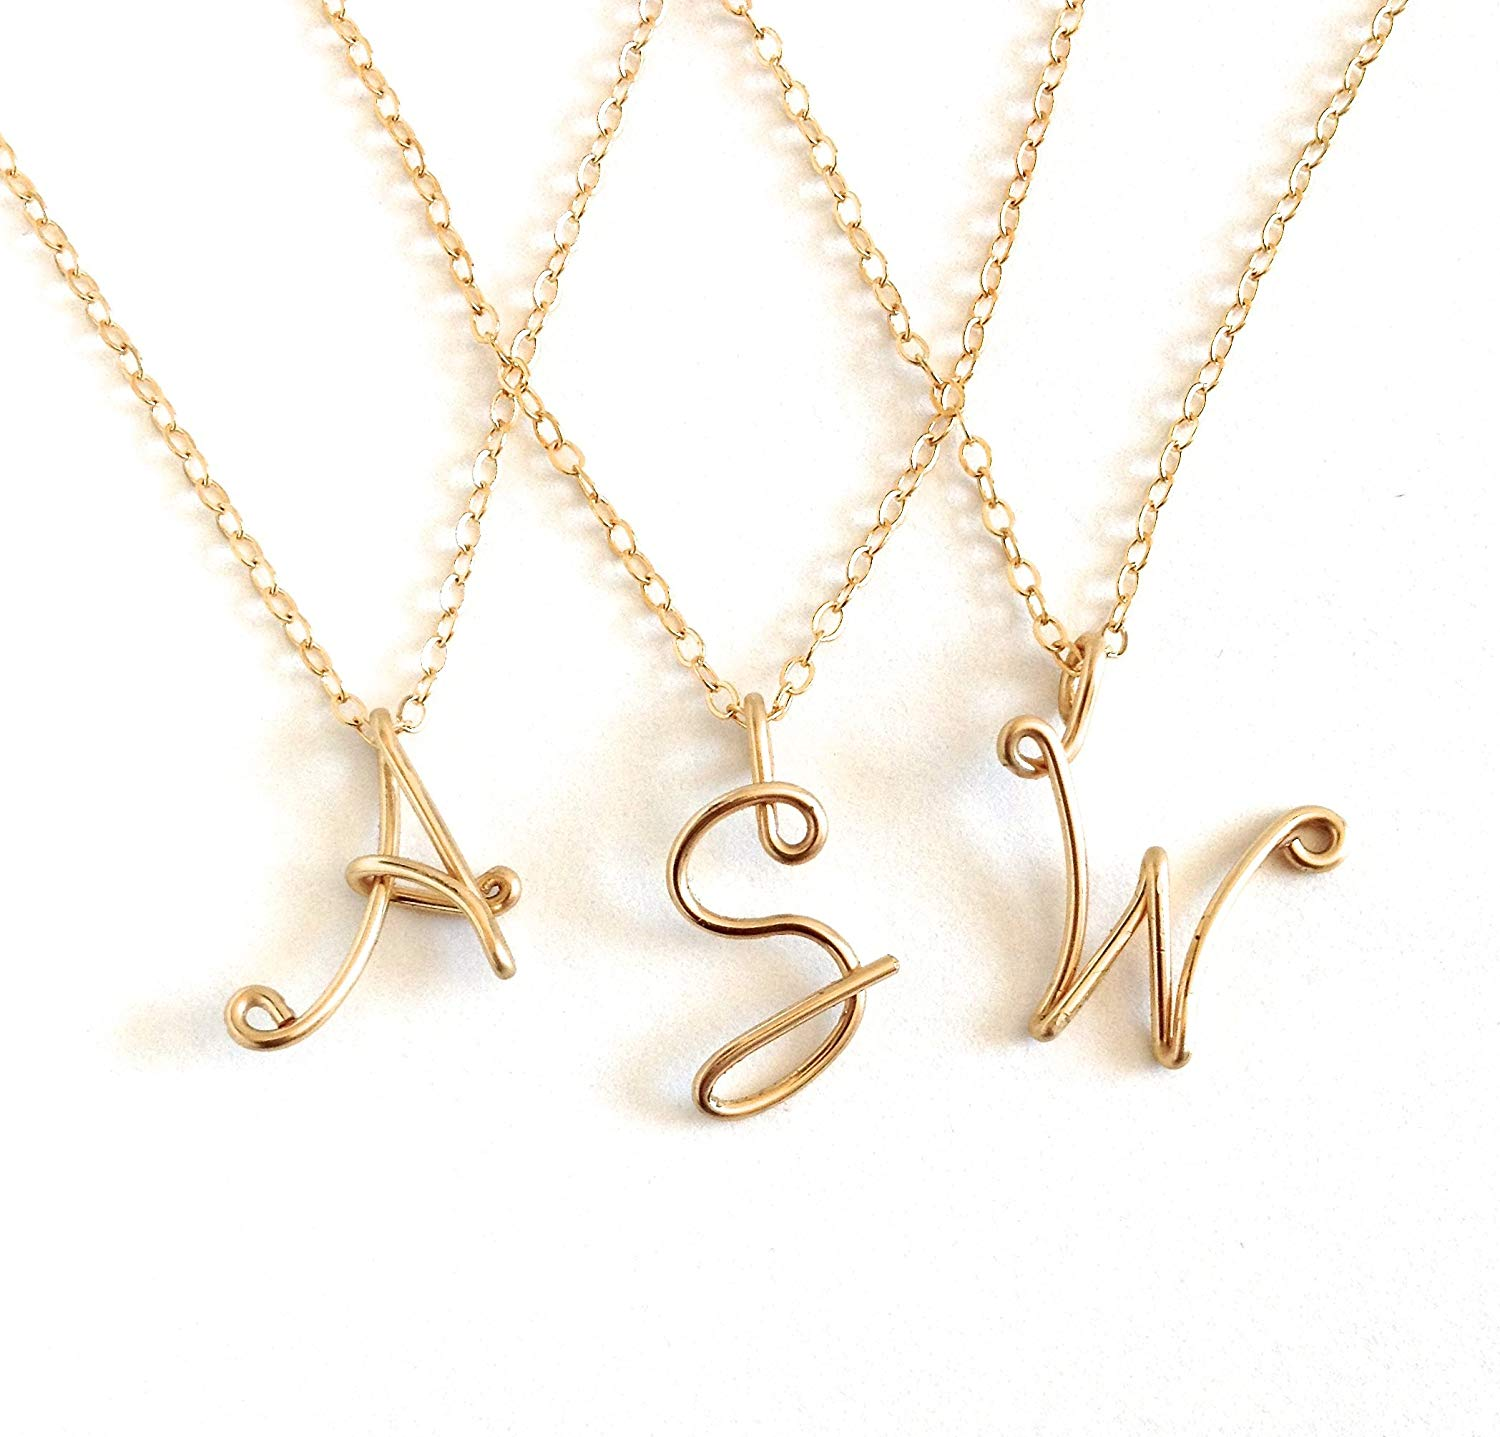 31d3948903e Cheap 14k Gold Initial Necklace, find 14k Gold Initial Necklace ...